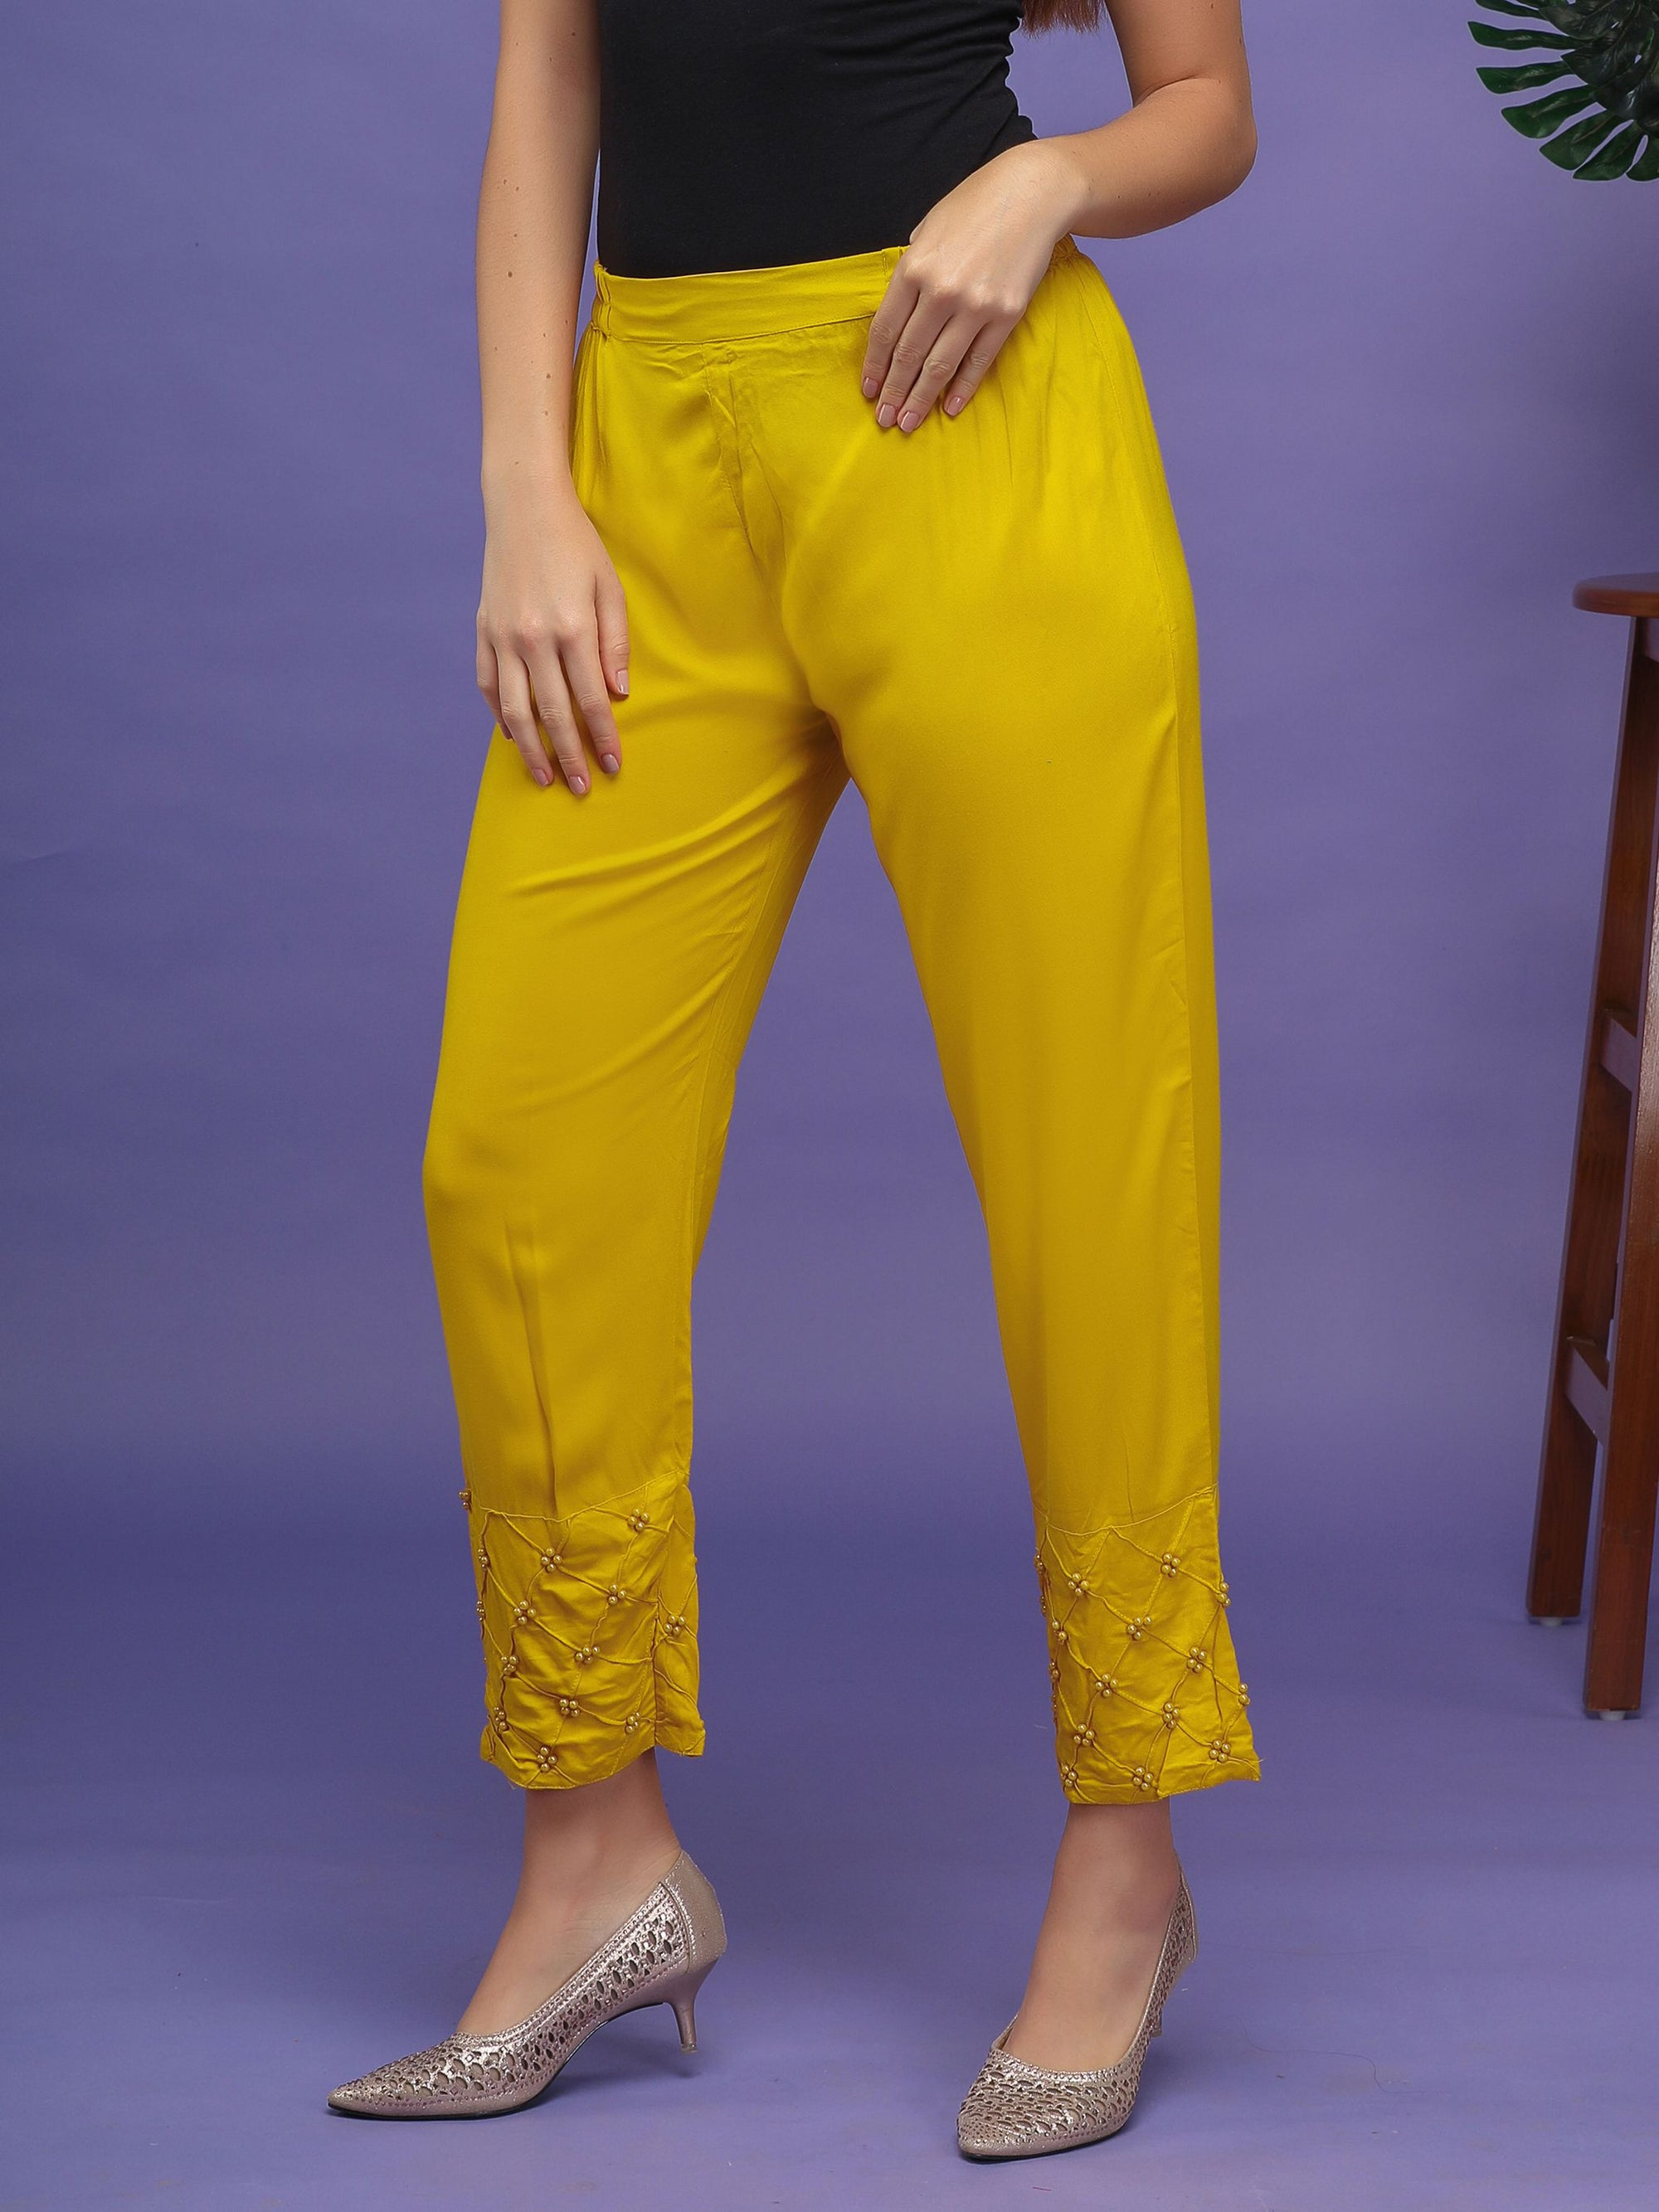 Pearl Ornamentation Laced Pants– Mustard Yellow